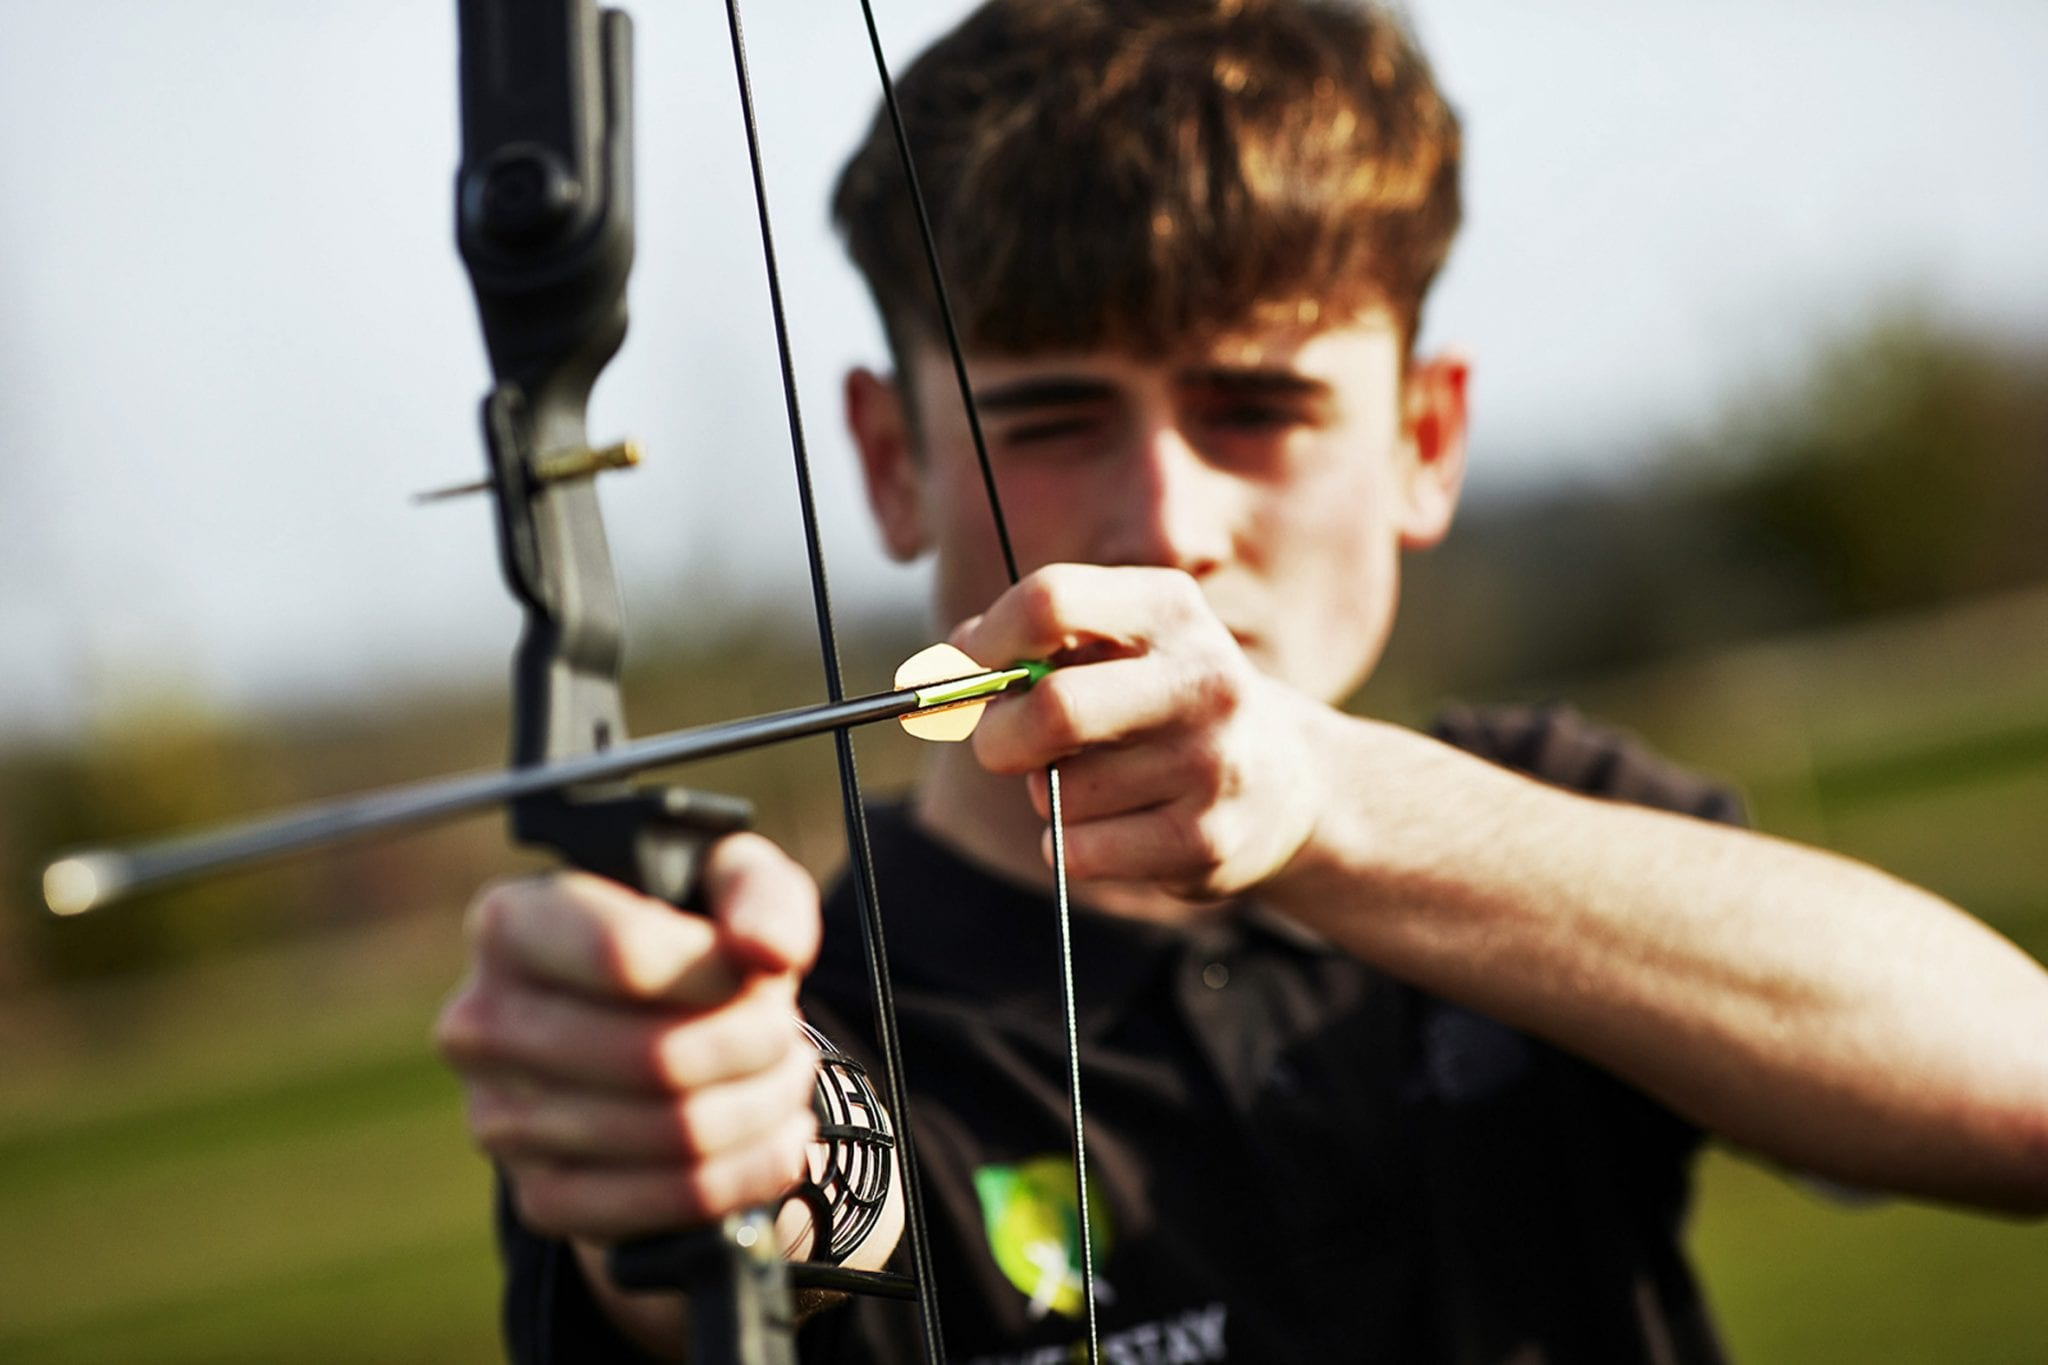 Archery, one of the activities available at Love2Stay Adventure Centre.